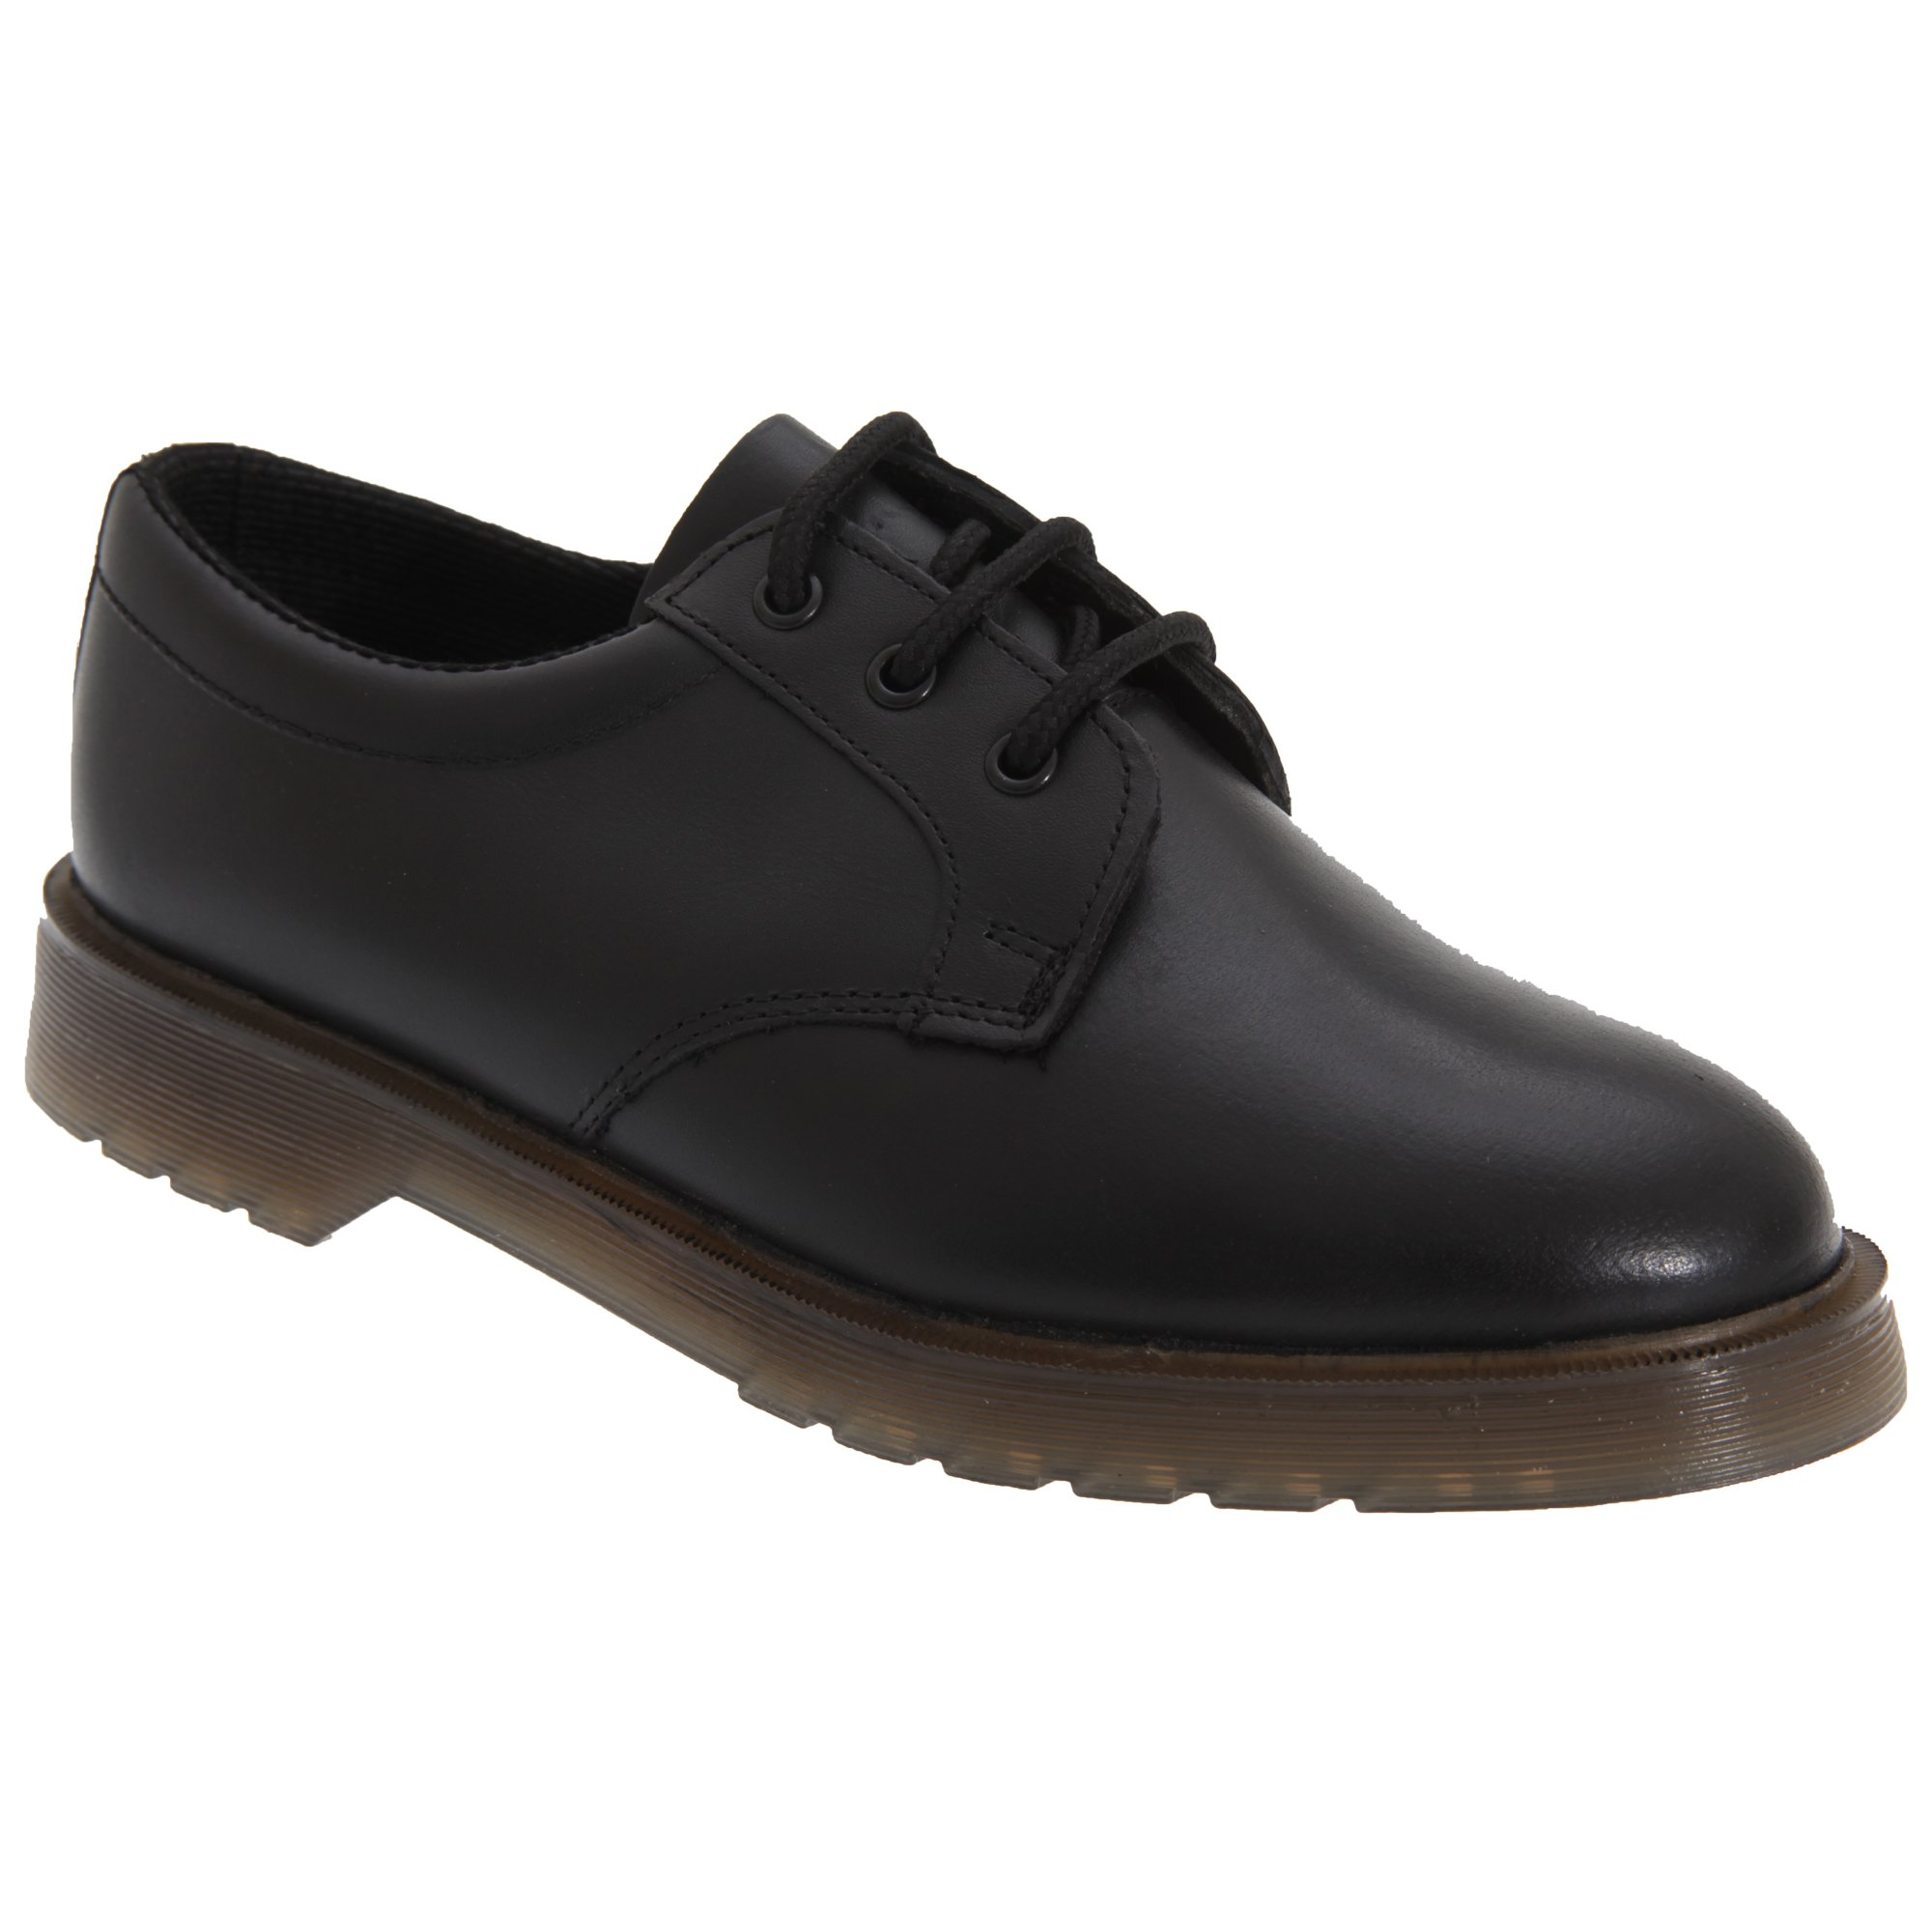 Grafters Mens Smooth Leather Uniform Shoes with Air Cushioned Sole (11 US) (Black) by Grafters